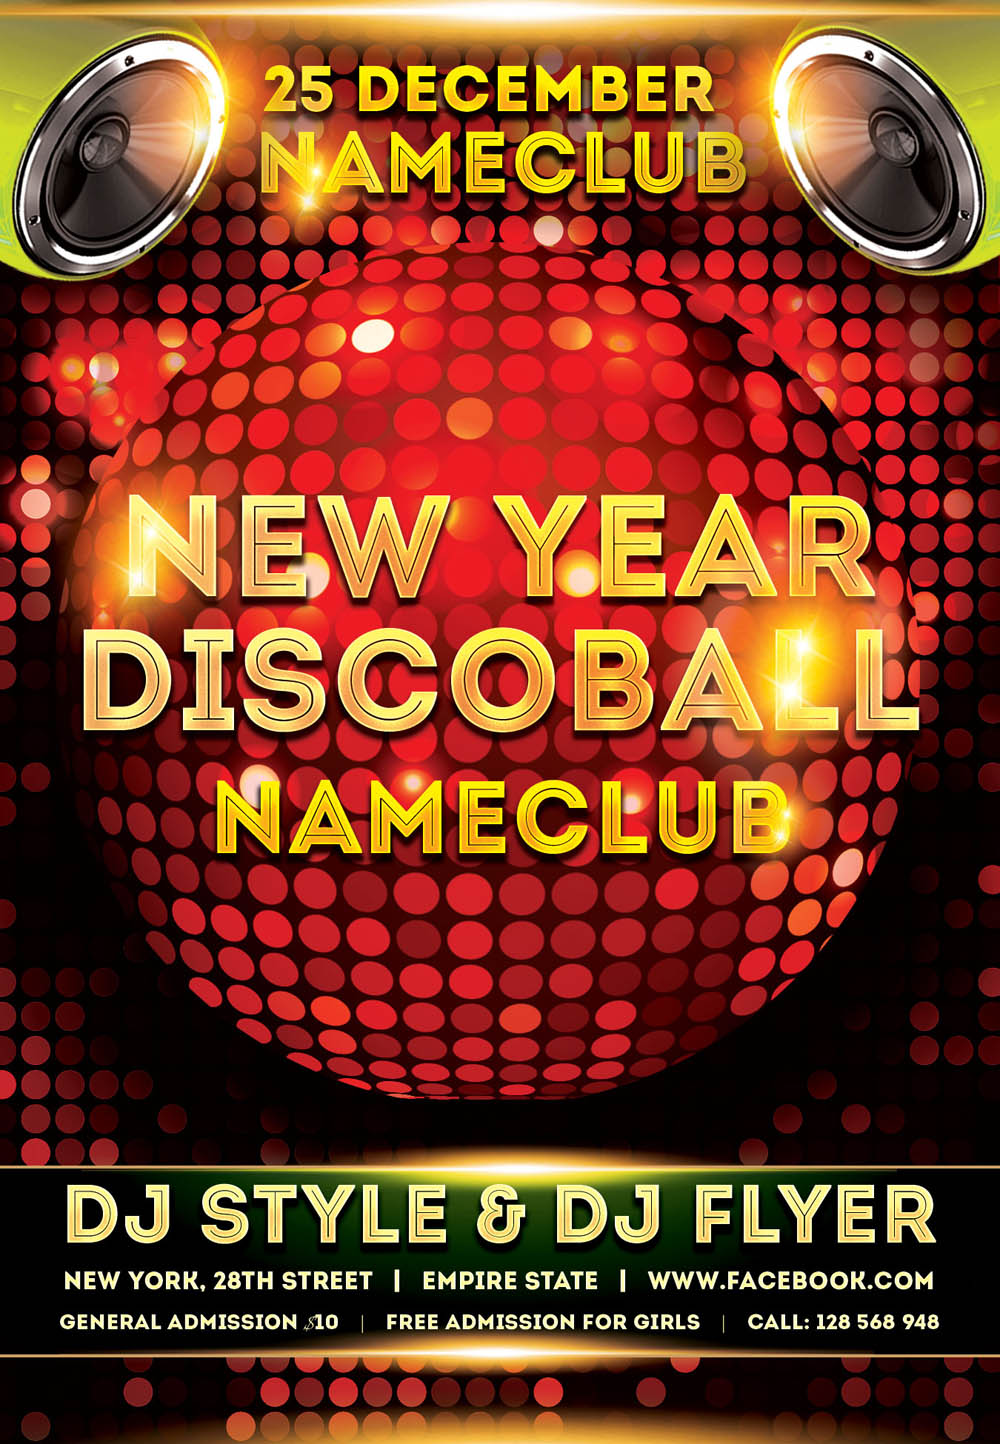 New Year Discoball FLyer